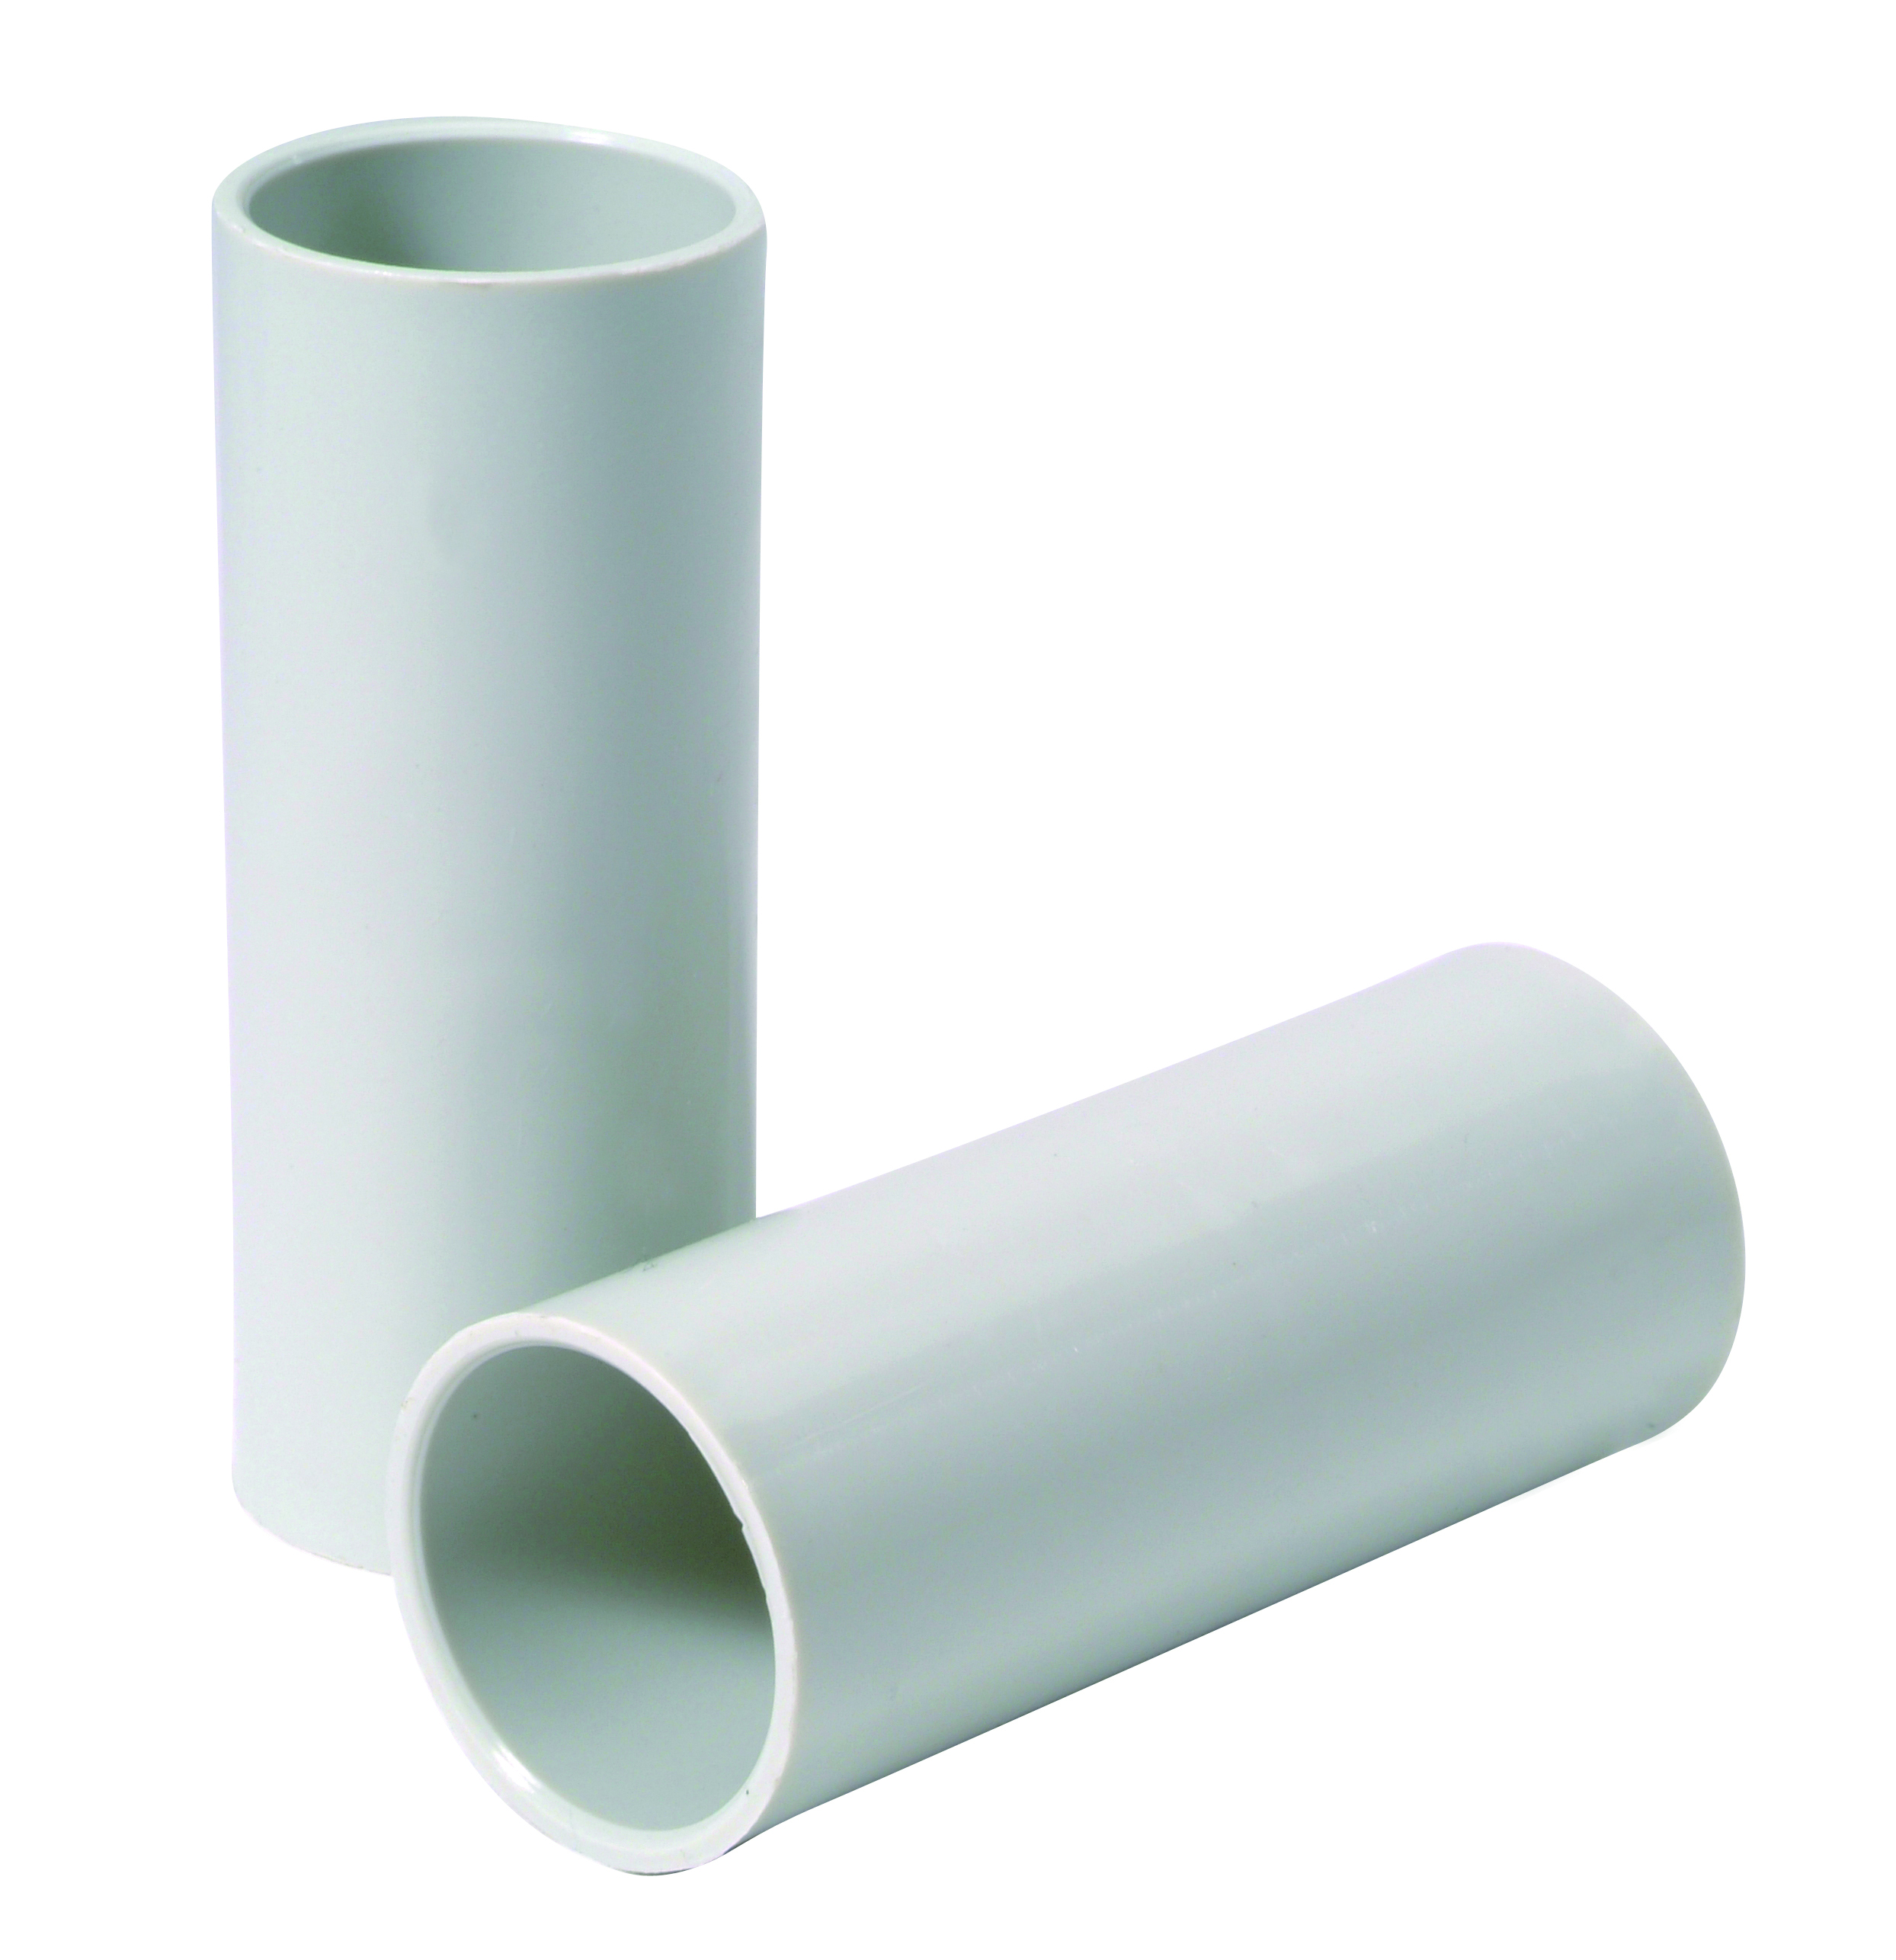 Sleeve 25mm 4 pieces